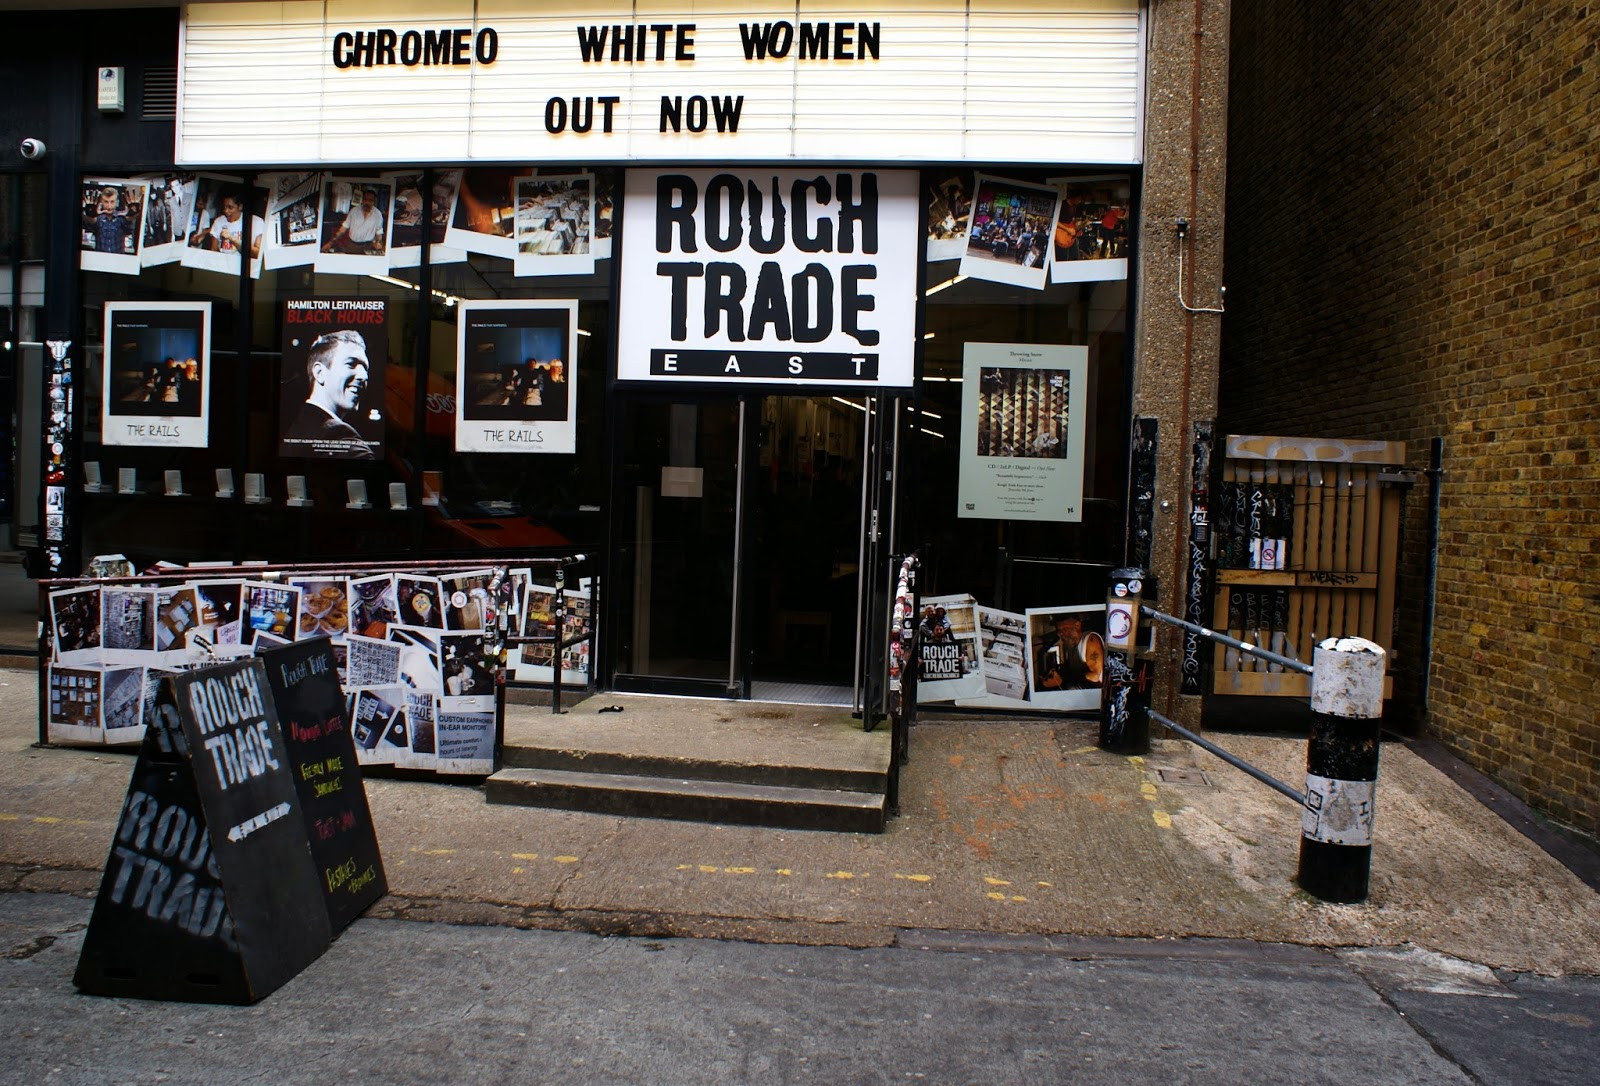 rough trade east brick lane london spitalfields united kingdom uk europe